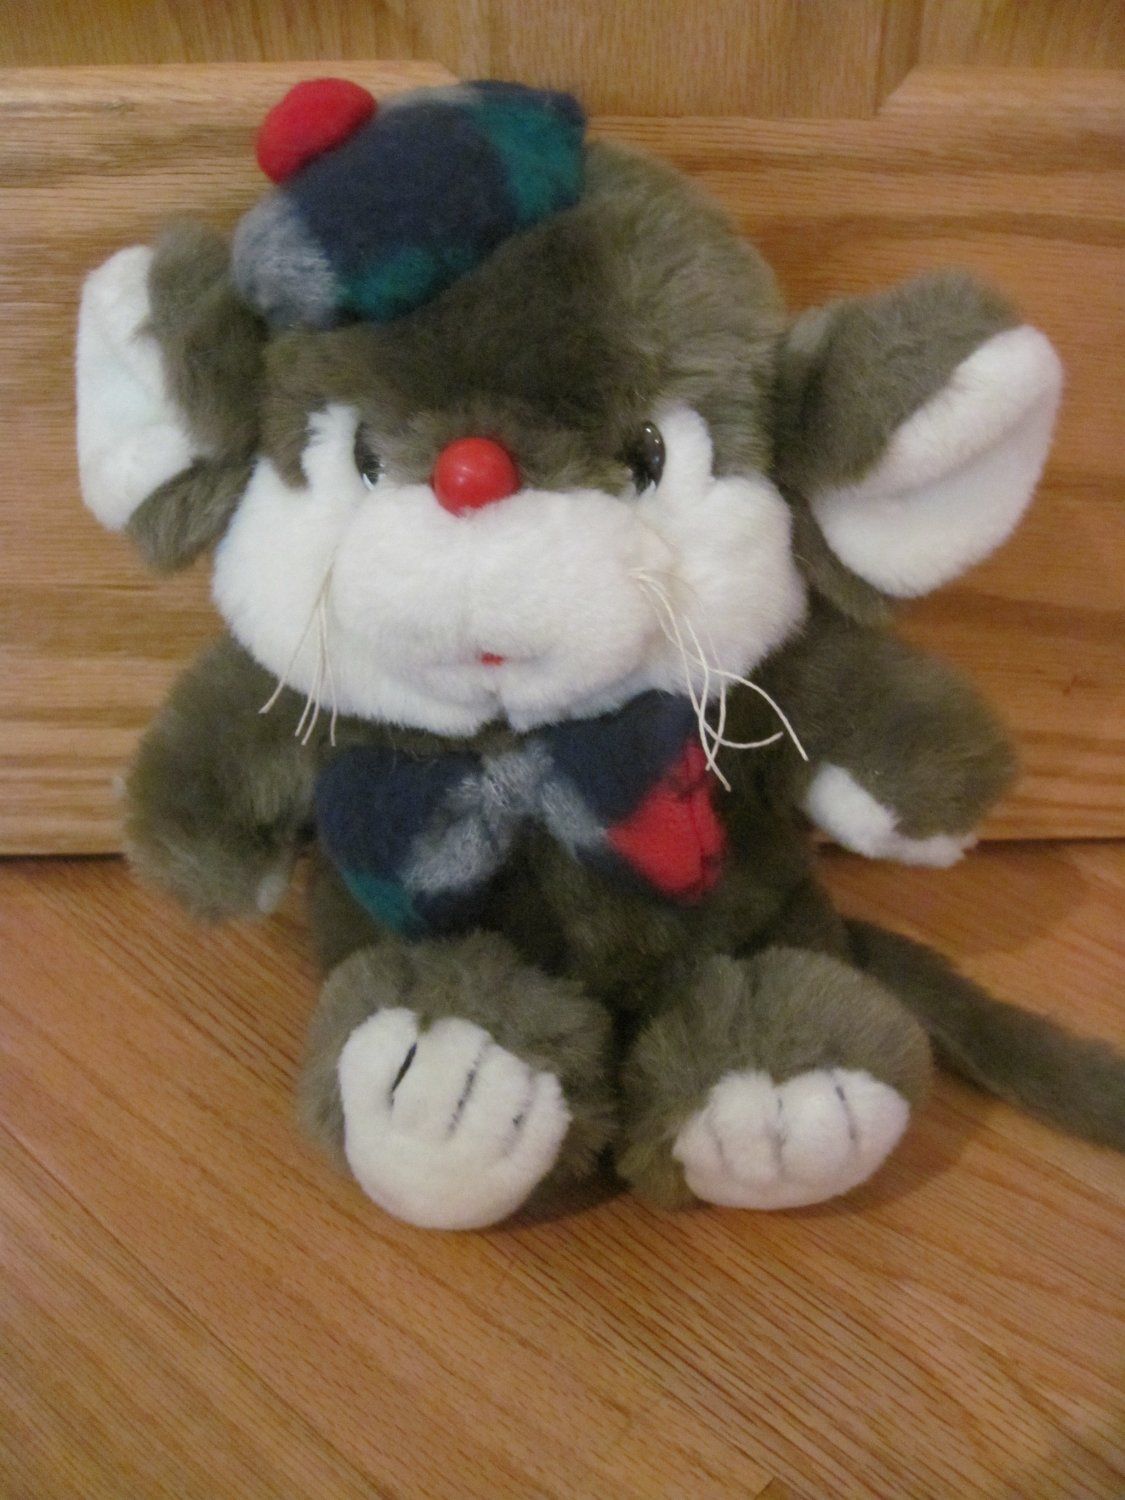 Vintage Target Plush Christmas Squeakers Mouse Toy Squeaky Ear Plaid